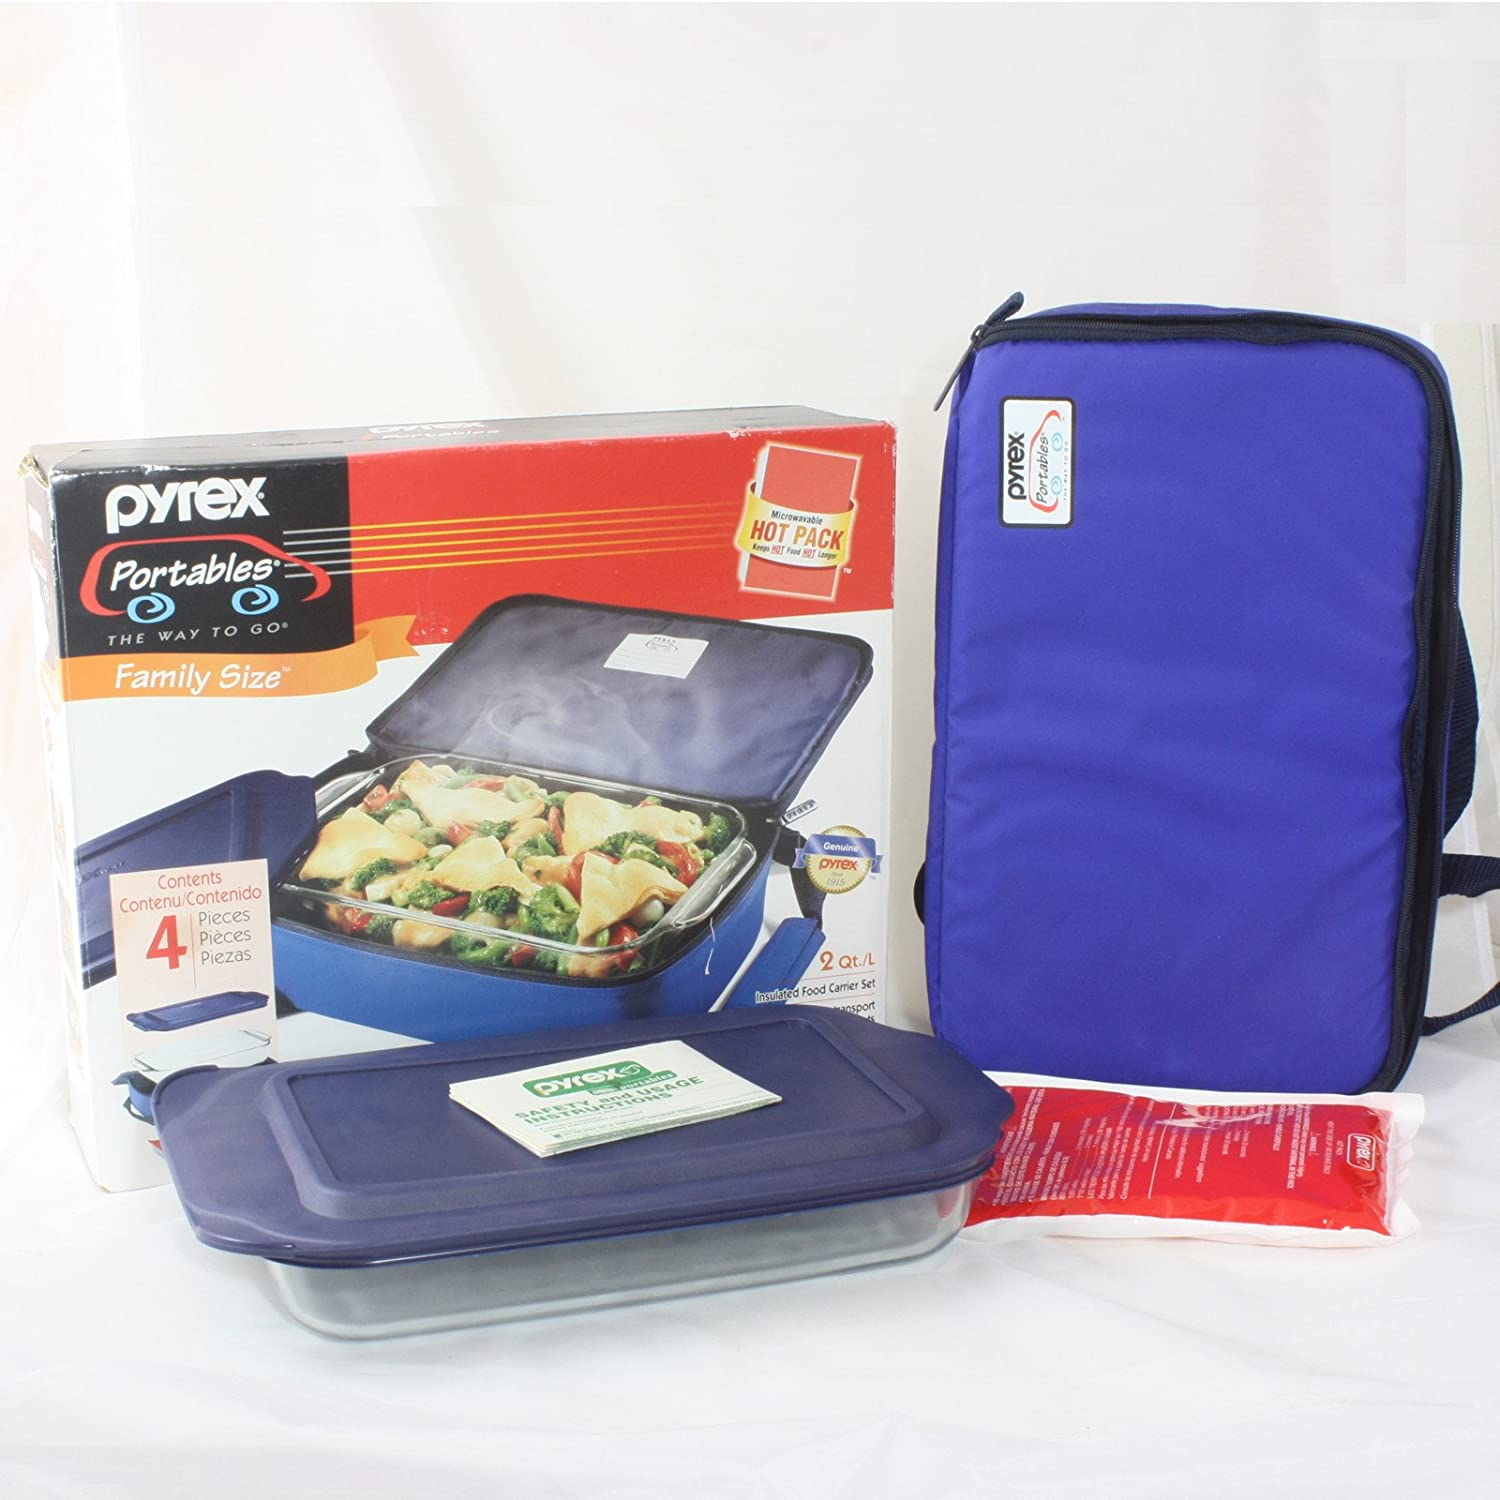 PYREX PORTABLES INSULATED FOOD CARRIER SET Corning 6021731